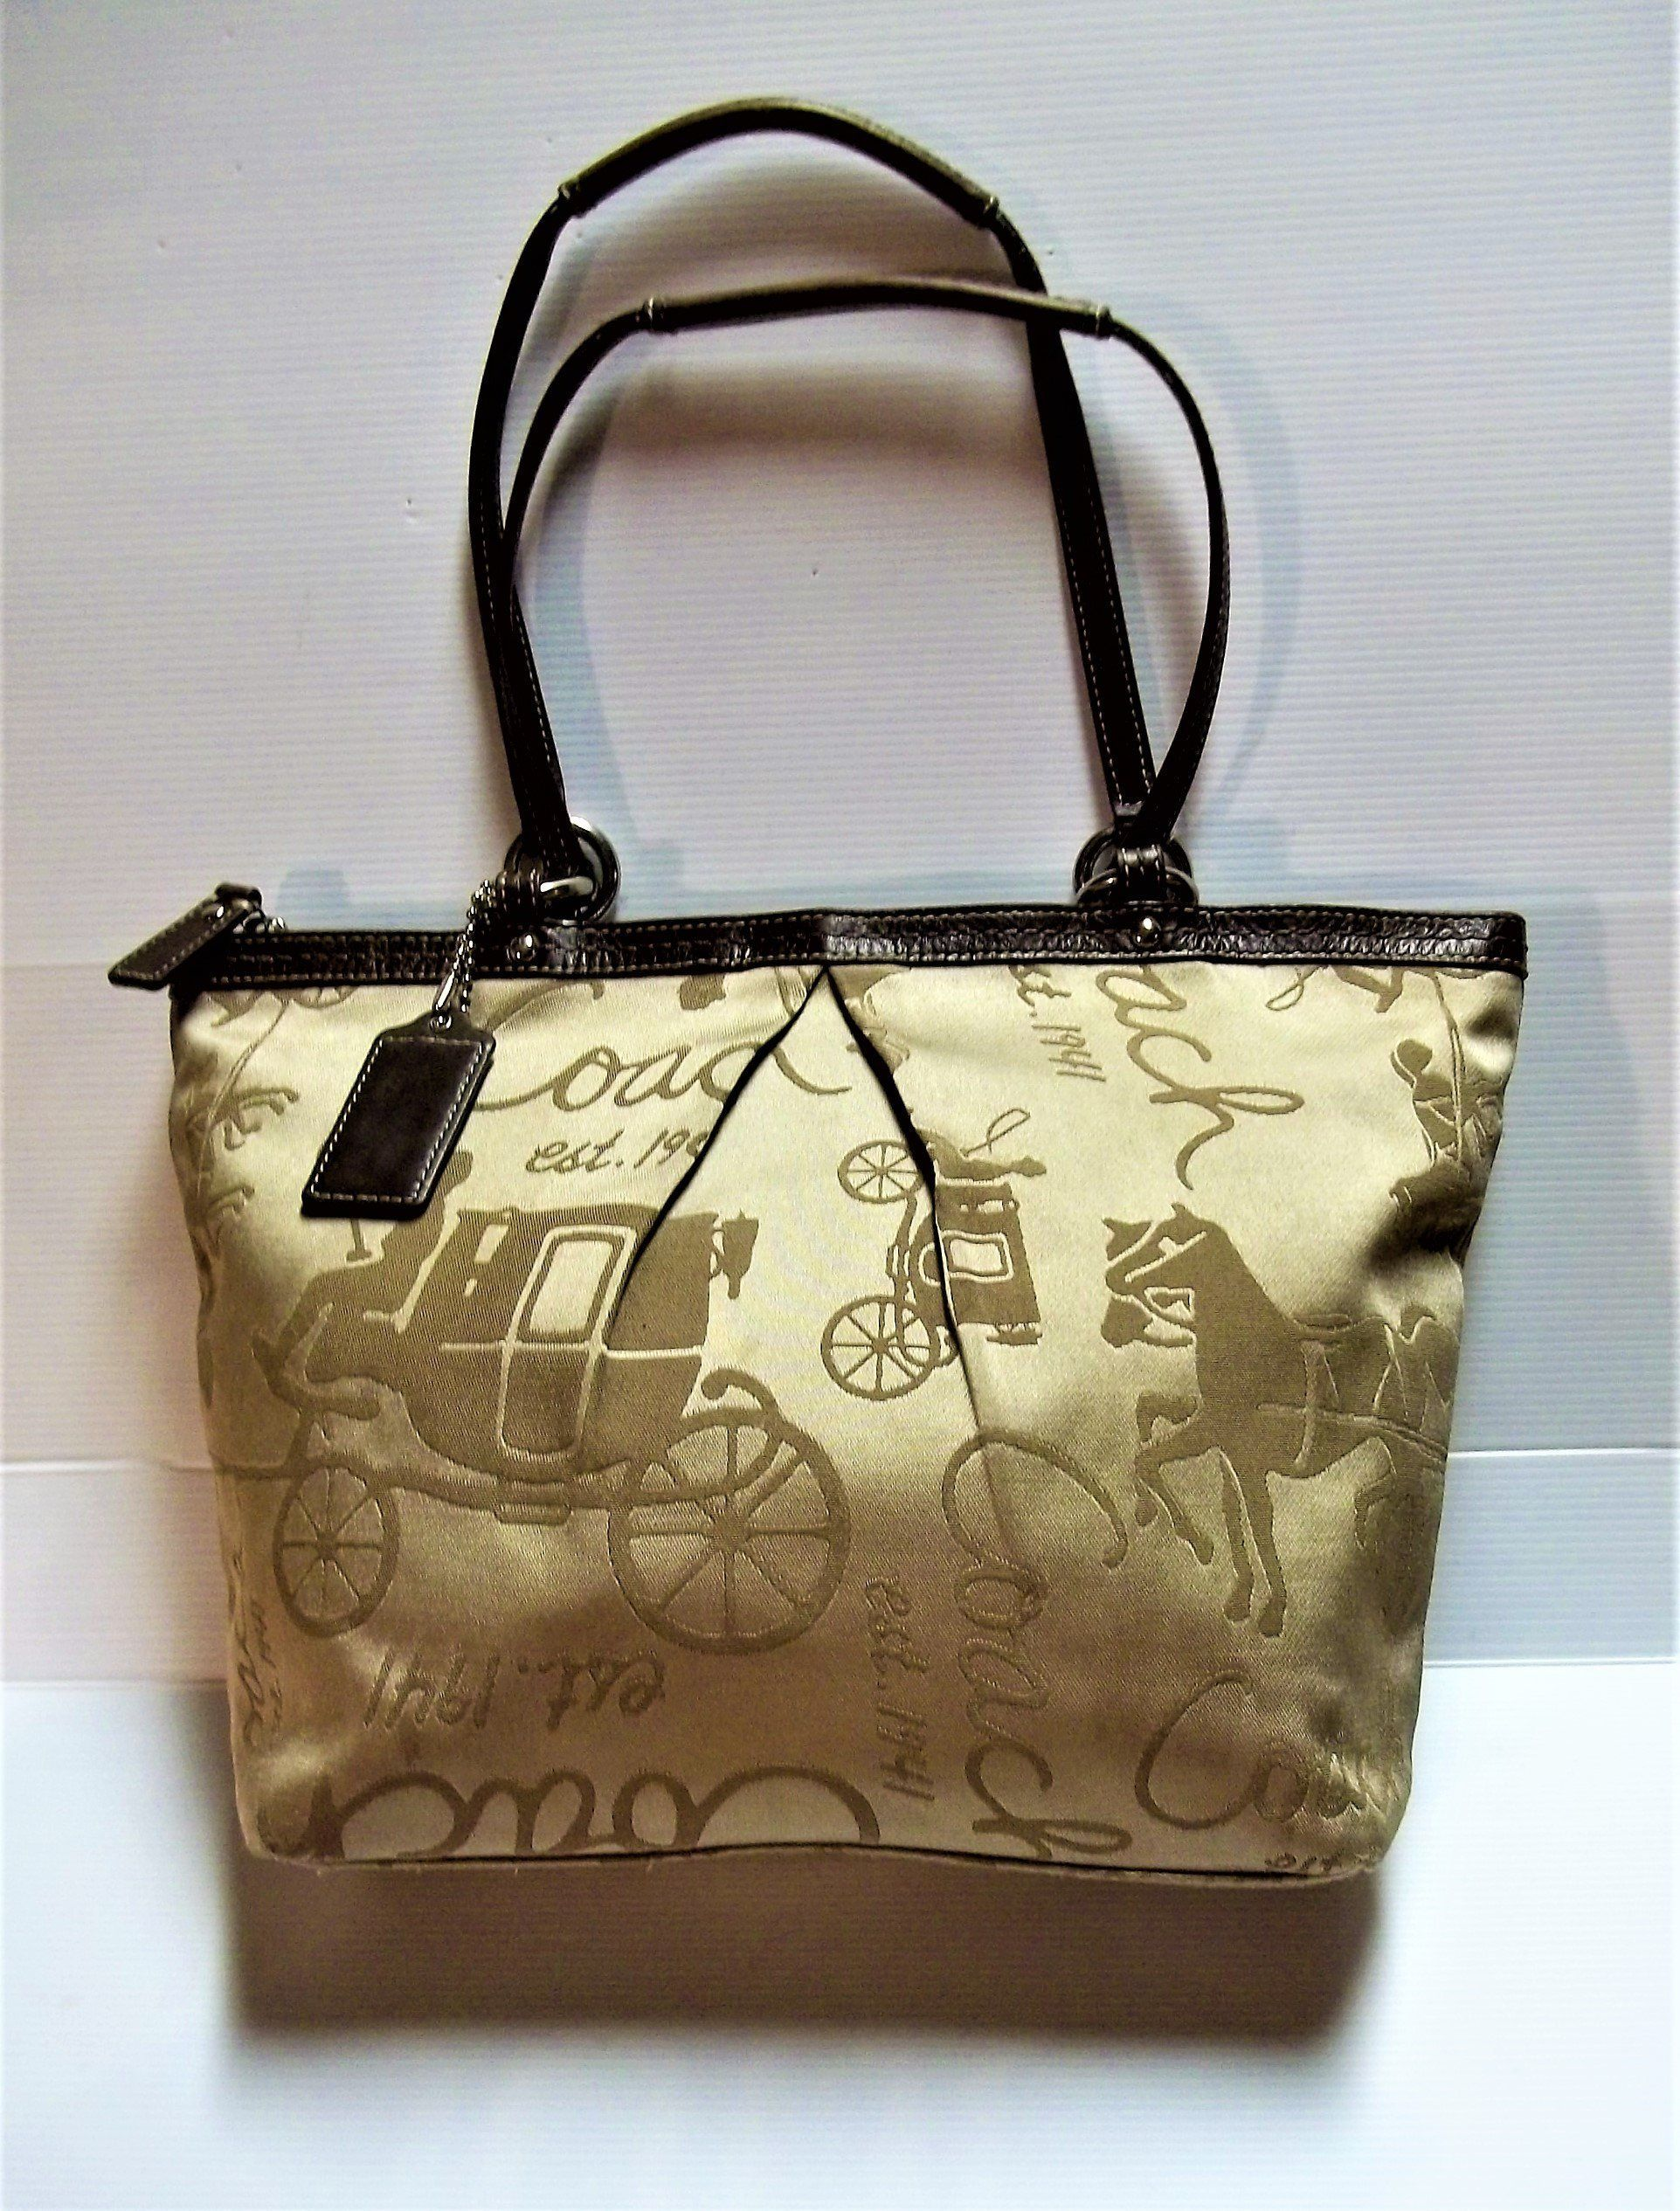 565e93842979 Vintage Coach Satin Khaki / Brown Leather Signature Horse and Carriage Tote  Bag # A1049-F14482 by calhounantiques on Etsy